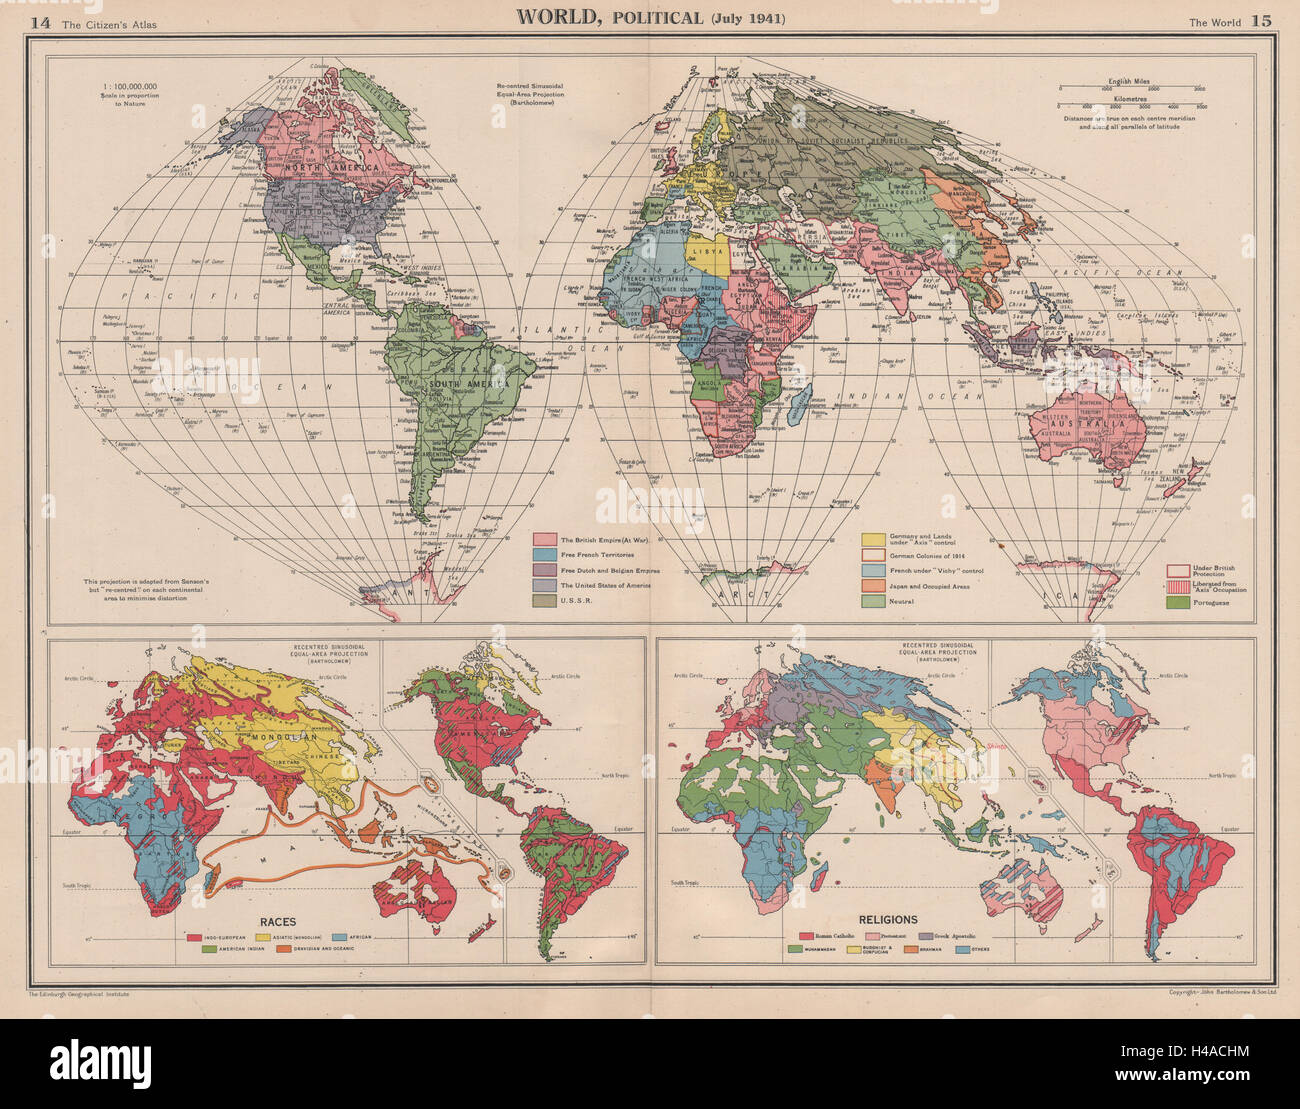 Third Reich Map on inner earth map, third earth map, strategic world map, panzer map, nazi party map, stalingrad map, saudi arabia map, yugoslavia map, europe map, maginot line map, nazi world domination map, strategic resources map, white supremacy ga map, china map, third ward map, neutrality acts map, middle east map, fascism map, palestine map, eugenics map,